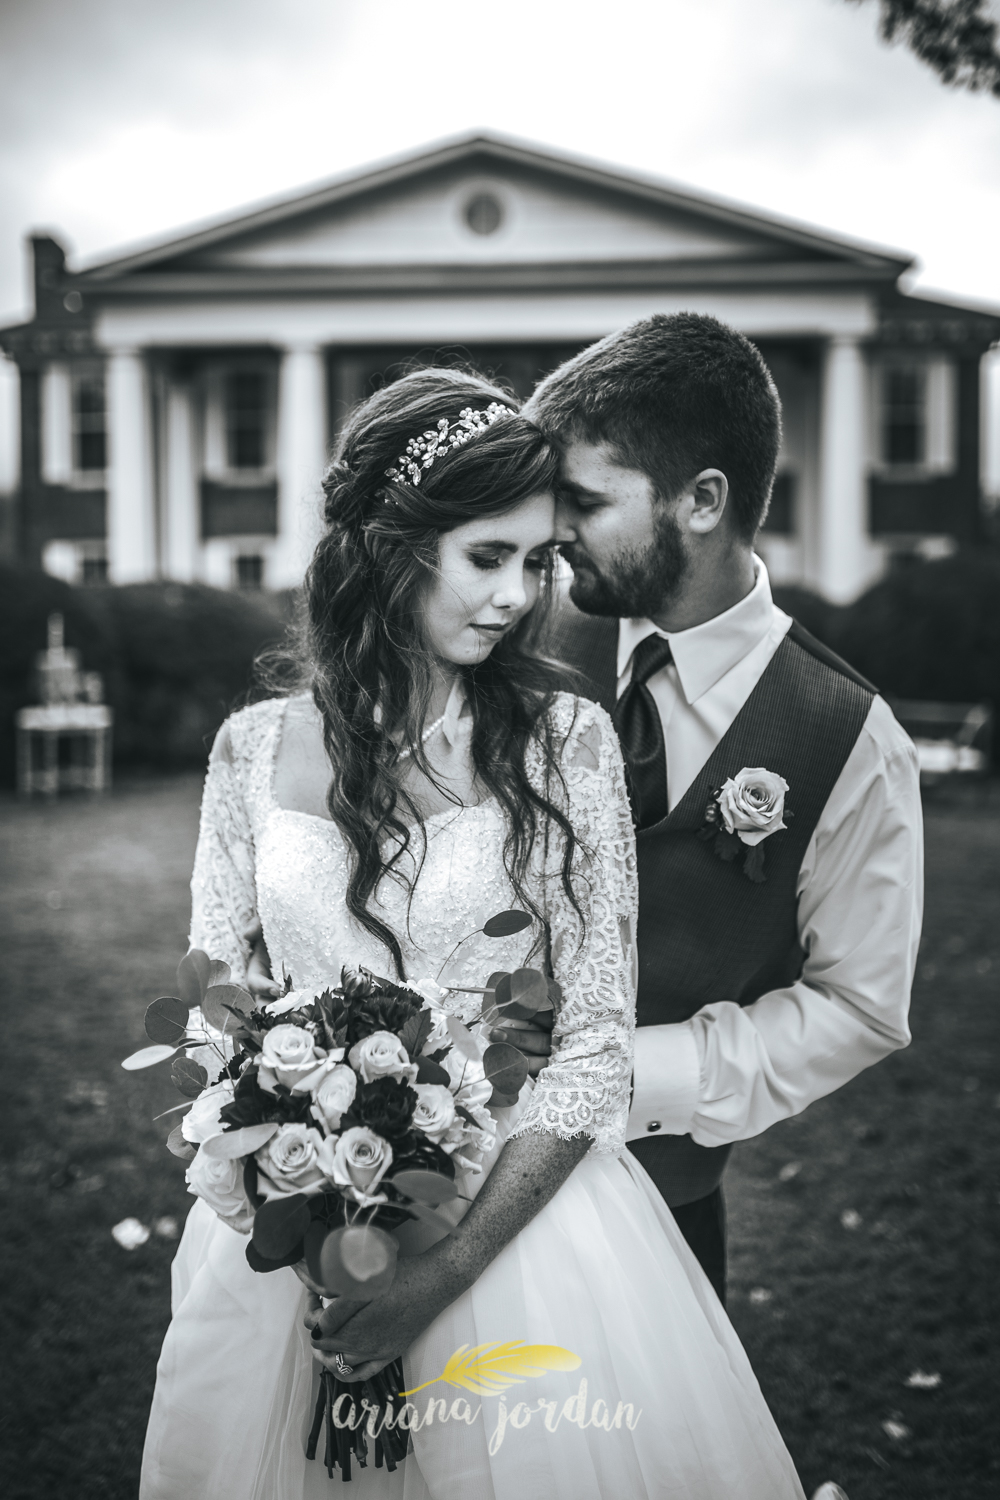 209 - Ariana Jordan - Kentucky Wedding Photographer - Landon & Tabitha 6983.jpg